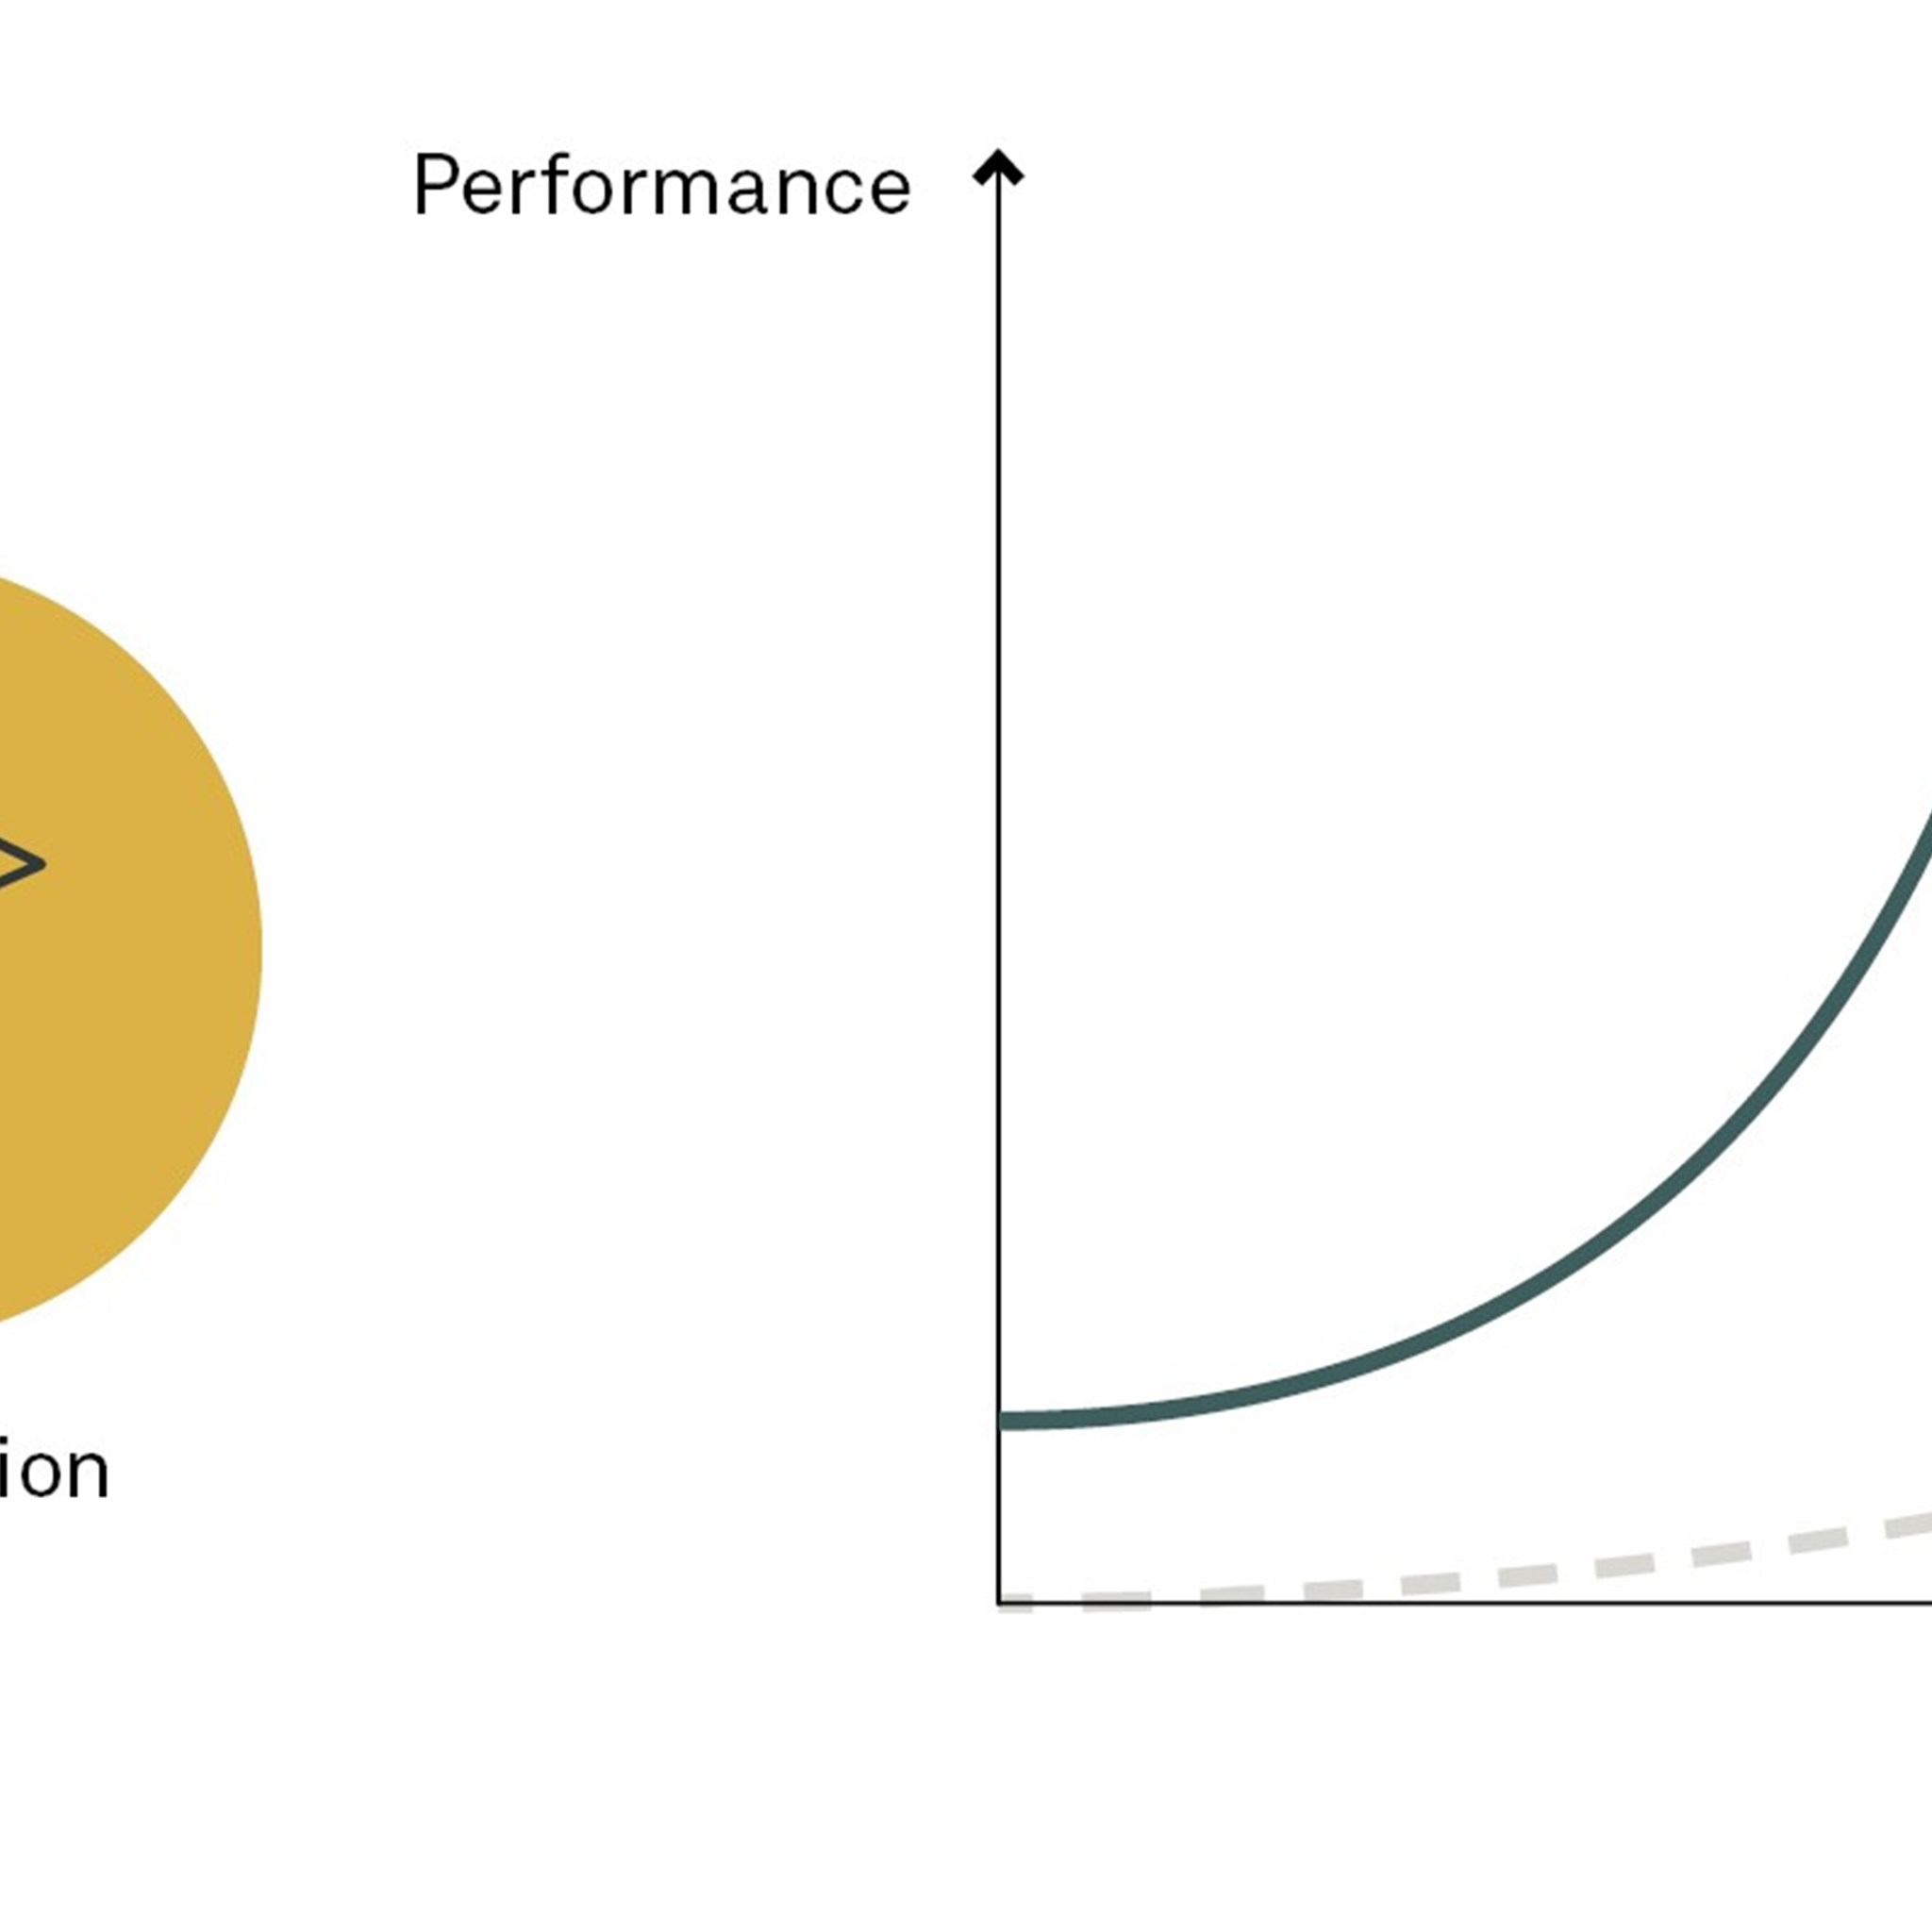 Performance shaping factors in onboarding